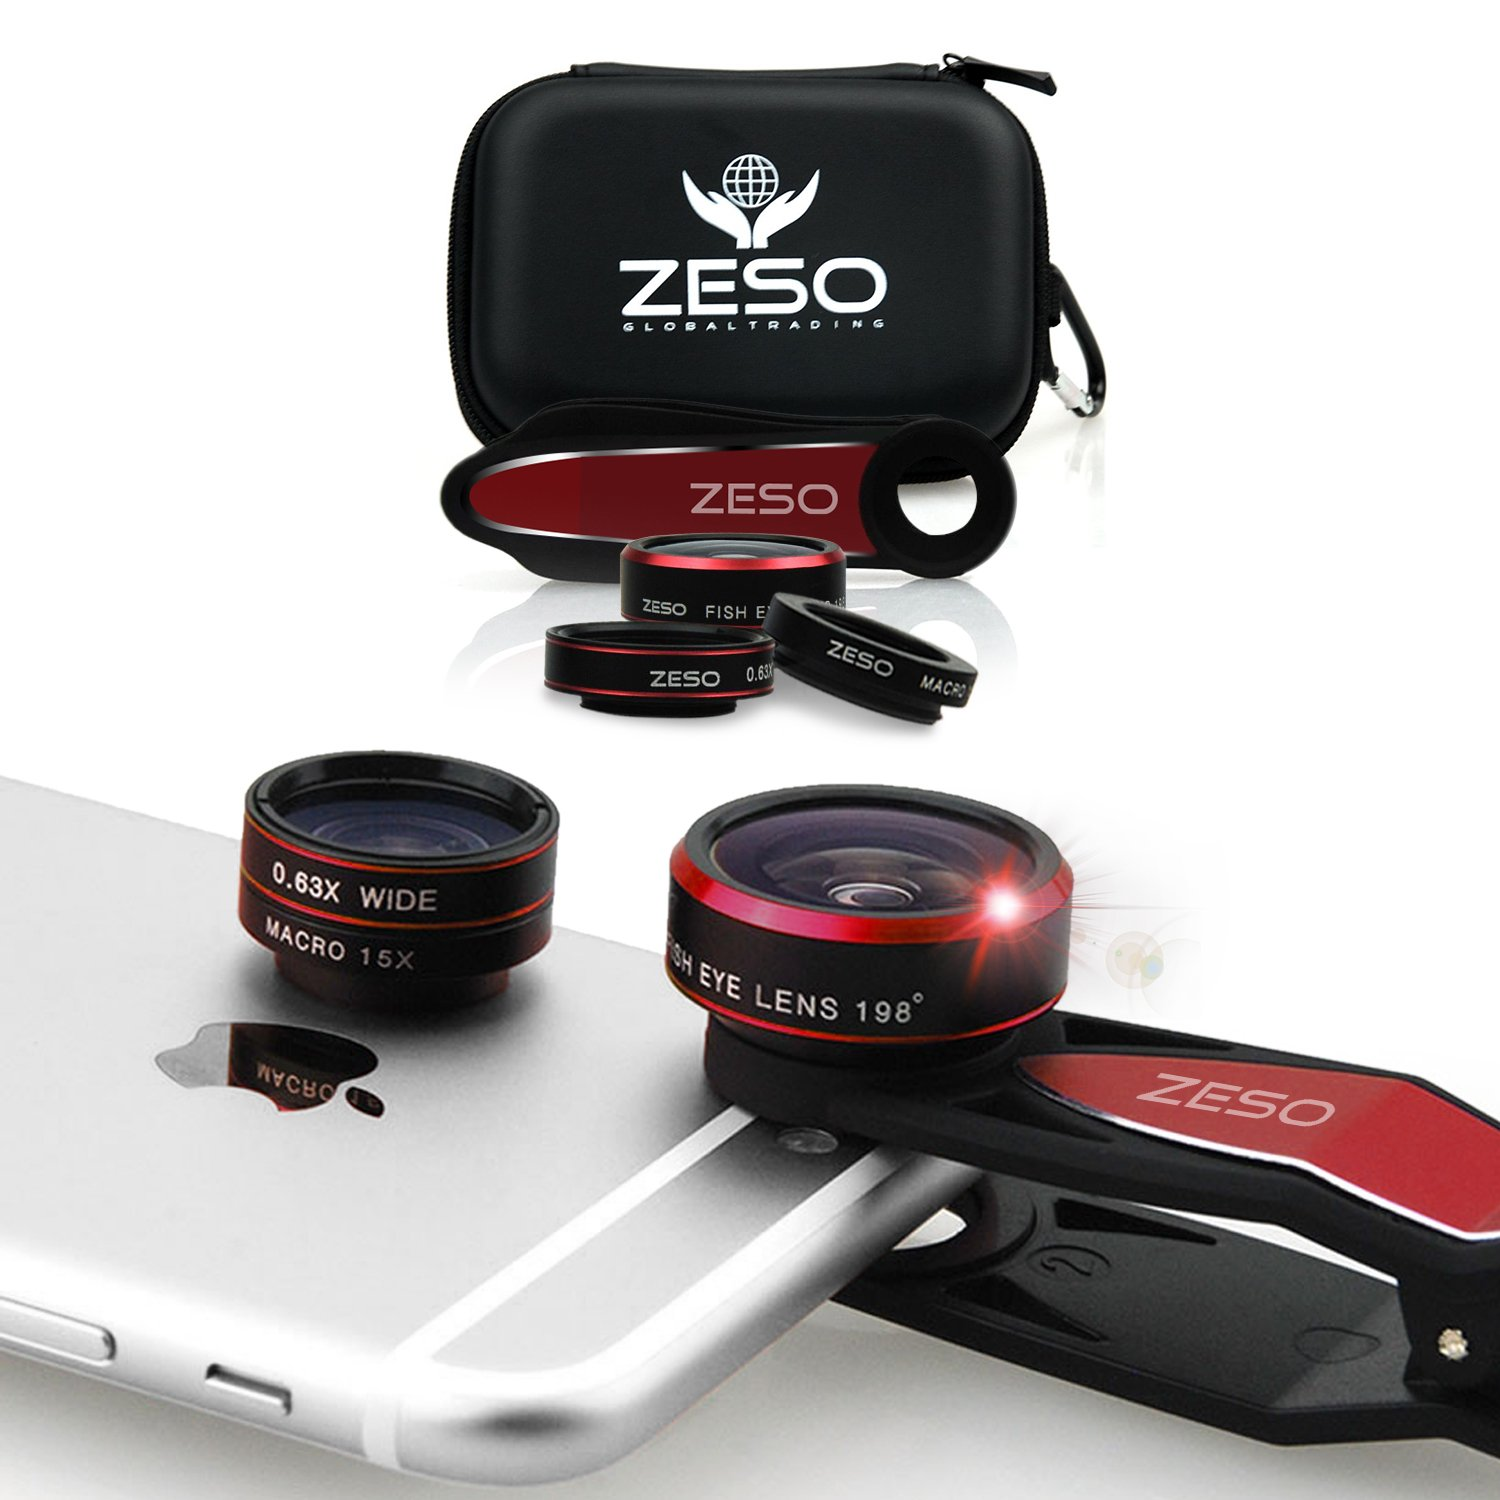 iPhone Lens 3 In 1 Kit by Zeso | Professional Fisheye, Macro & Wide Angle Lenses | For iPhone, Samsung Galaxy, Android, iPads, Tablets | Universal Phone Clip & Hard Storage Case | 4 Colors Camera Lens by Zeso lens